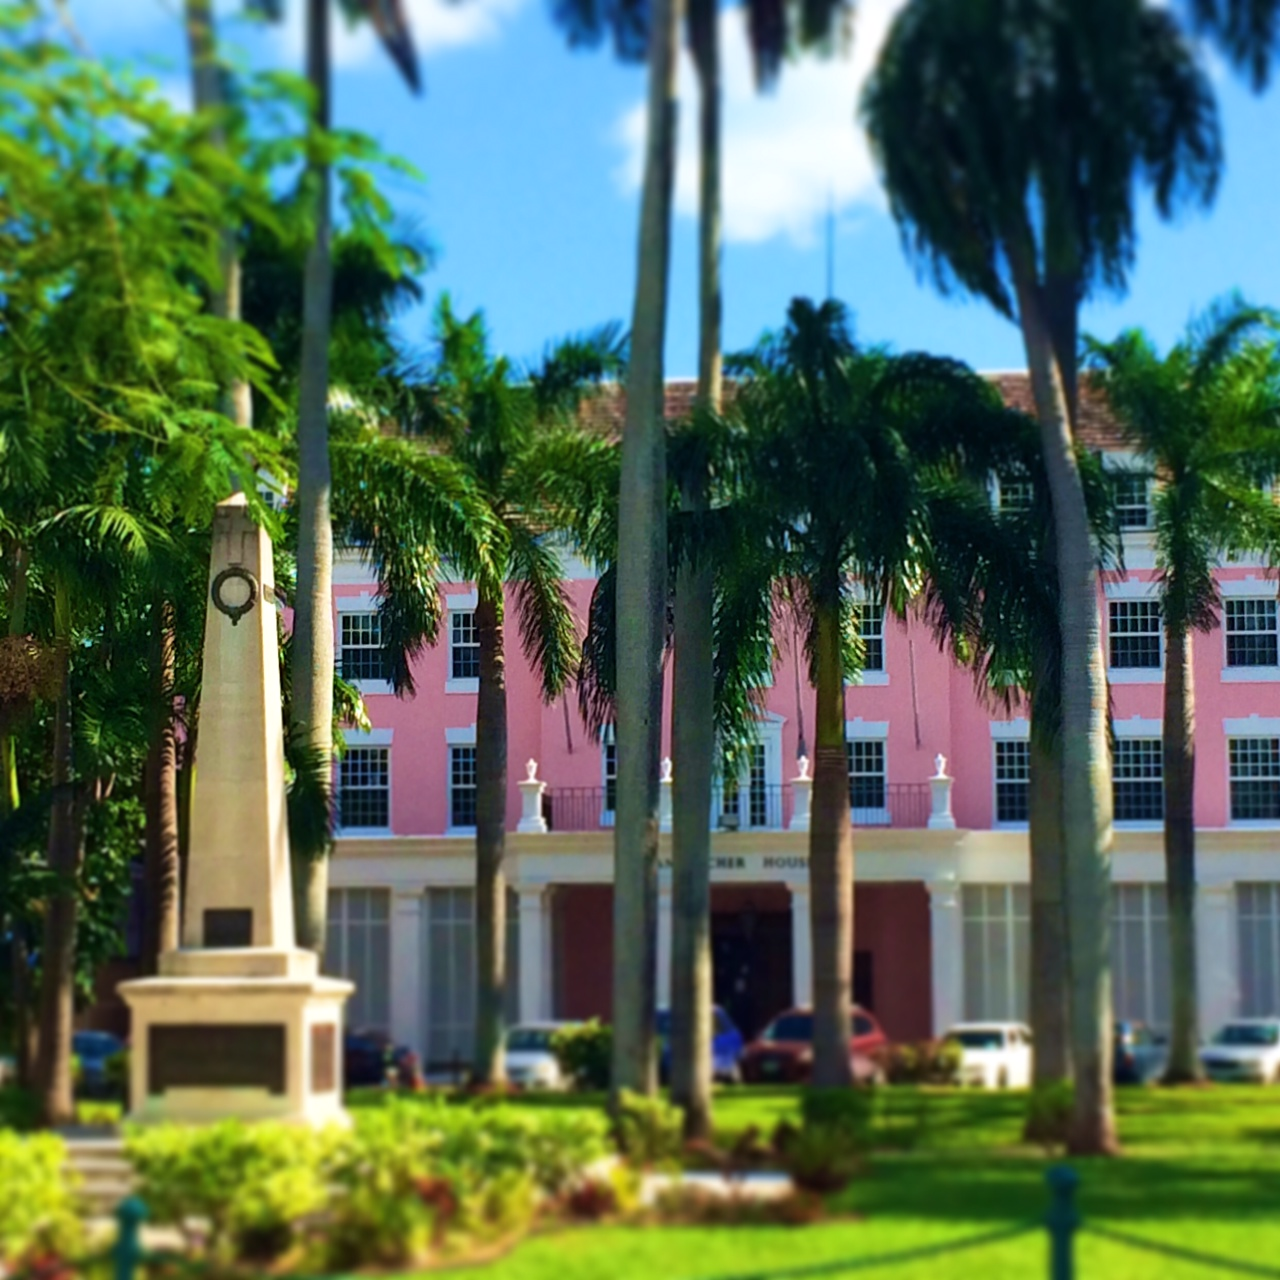 A pink building in Nassau